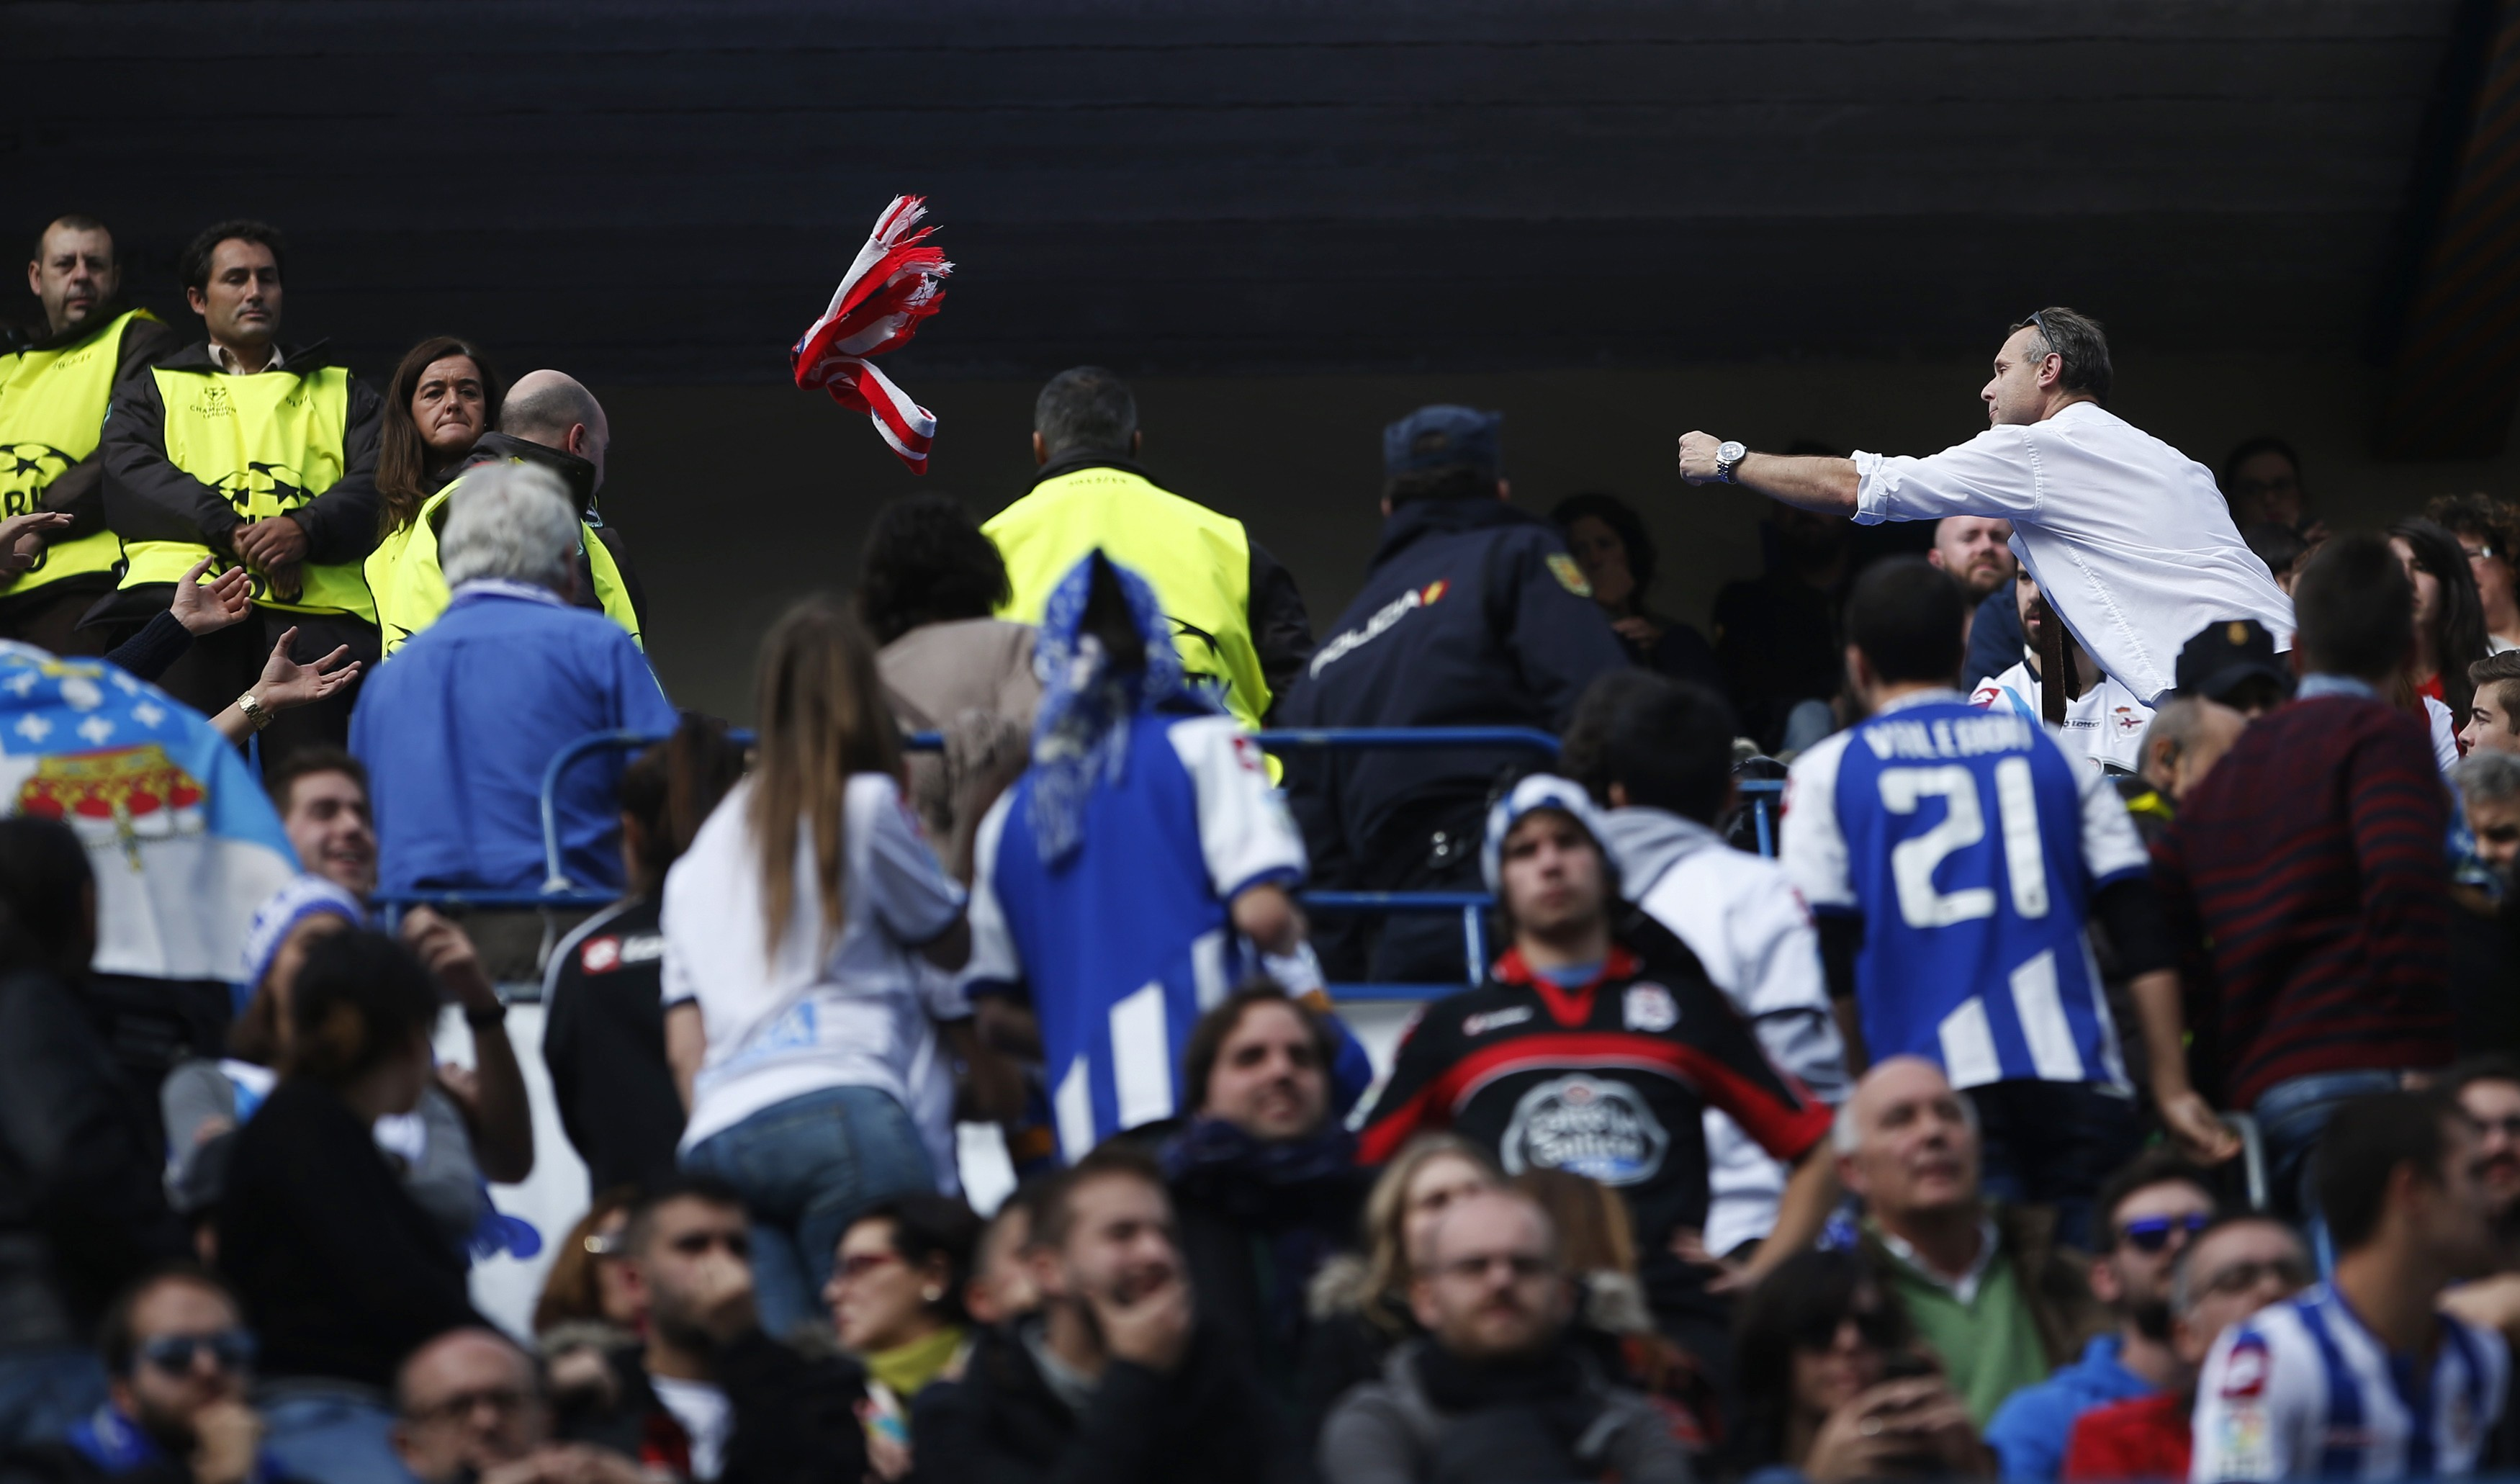 An Atletico Madrid fan (R) throws his team's scarf to Deportivo Coruna supporters during their Spanish first division soccer match at Vicente Calderon stadium in Madrid, November 30, 2014. A Deportivo La Coruna supporter was critically injured when dozens of rival fans clashed near the stadium before the club's La Liga match at Atletico Madrid on Sunday. REUTERS/Susana Vera (SPAIN - Tags: SPORT SOCCER)